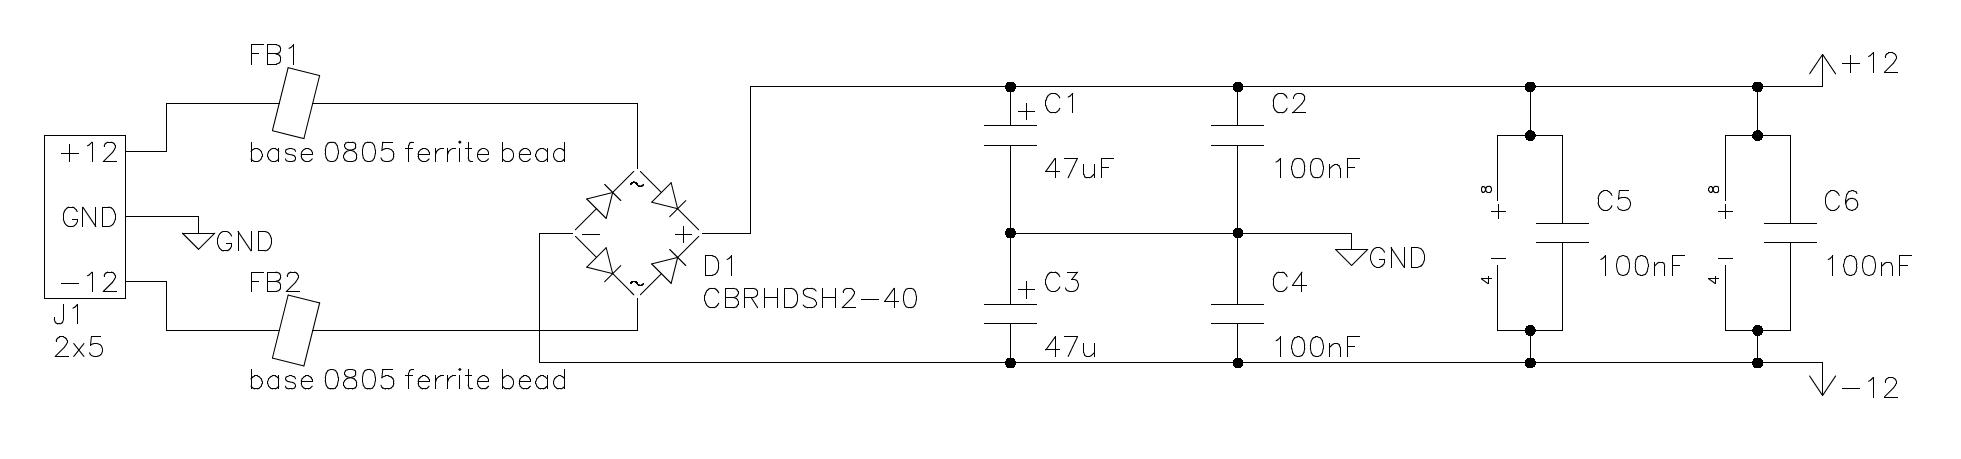 invoff/images/schematic_powersection.png